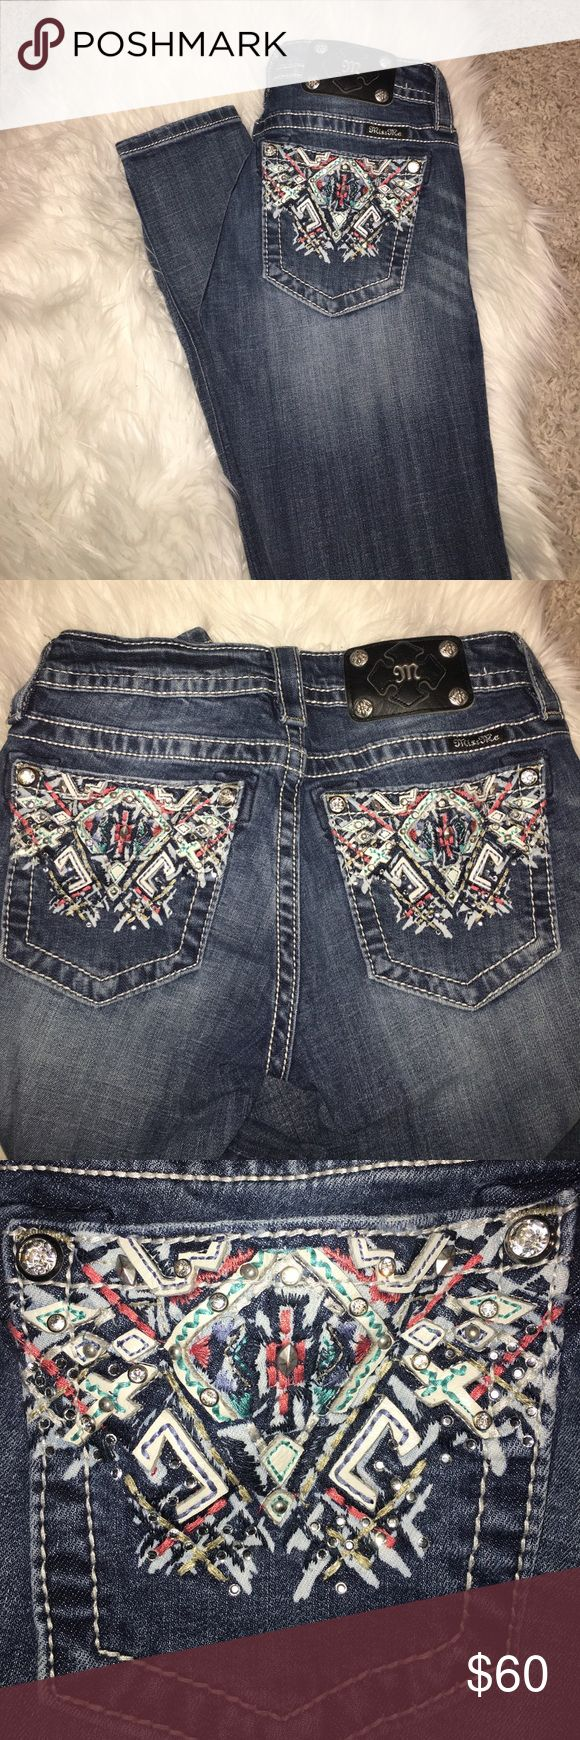 Girls Miss Me jeans Girls miss me jeans size 25 these are mid-rise skinny beautiful detailing on pocket great condition with some distressing Miss Me Jeans Skinny